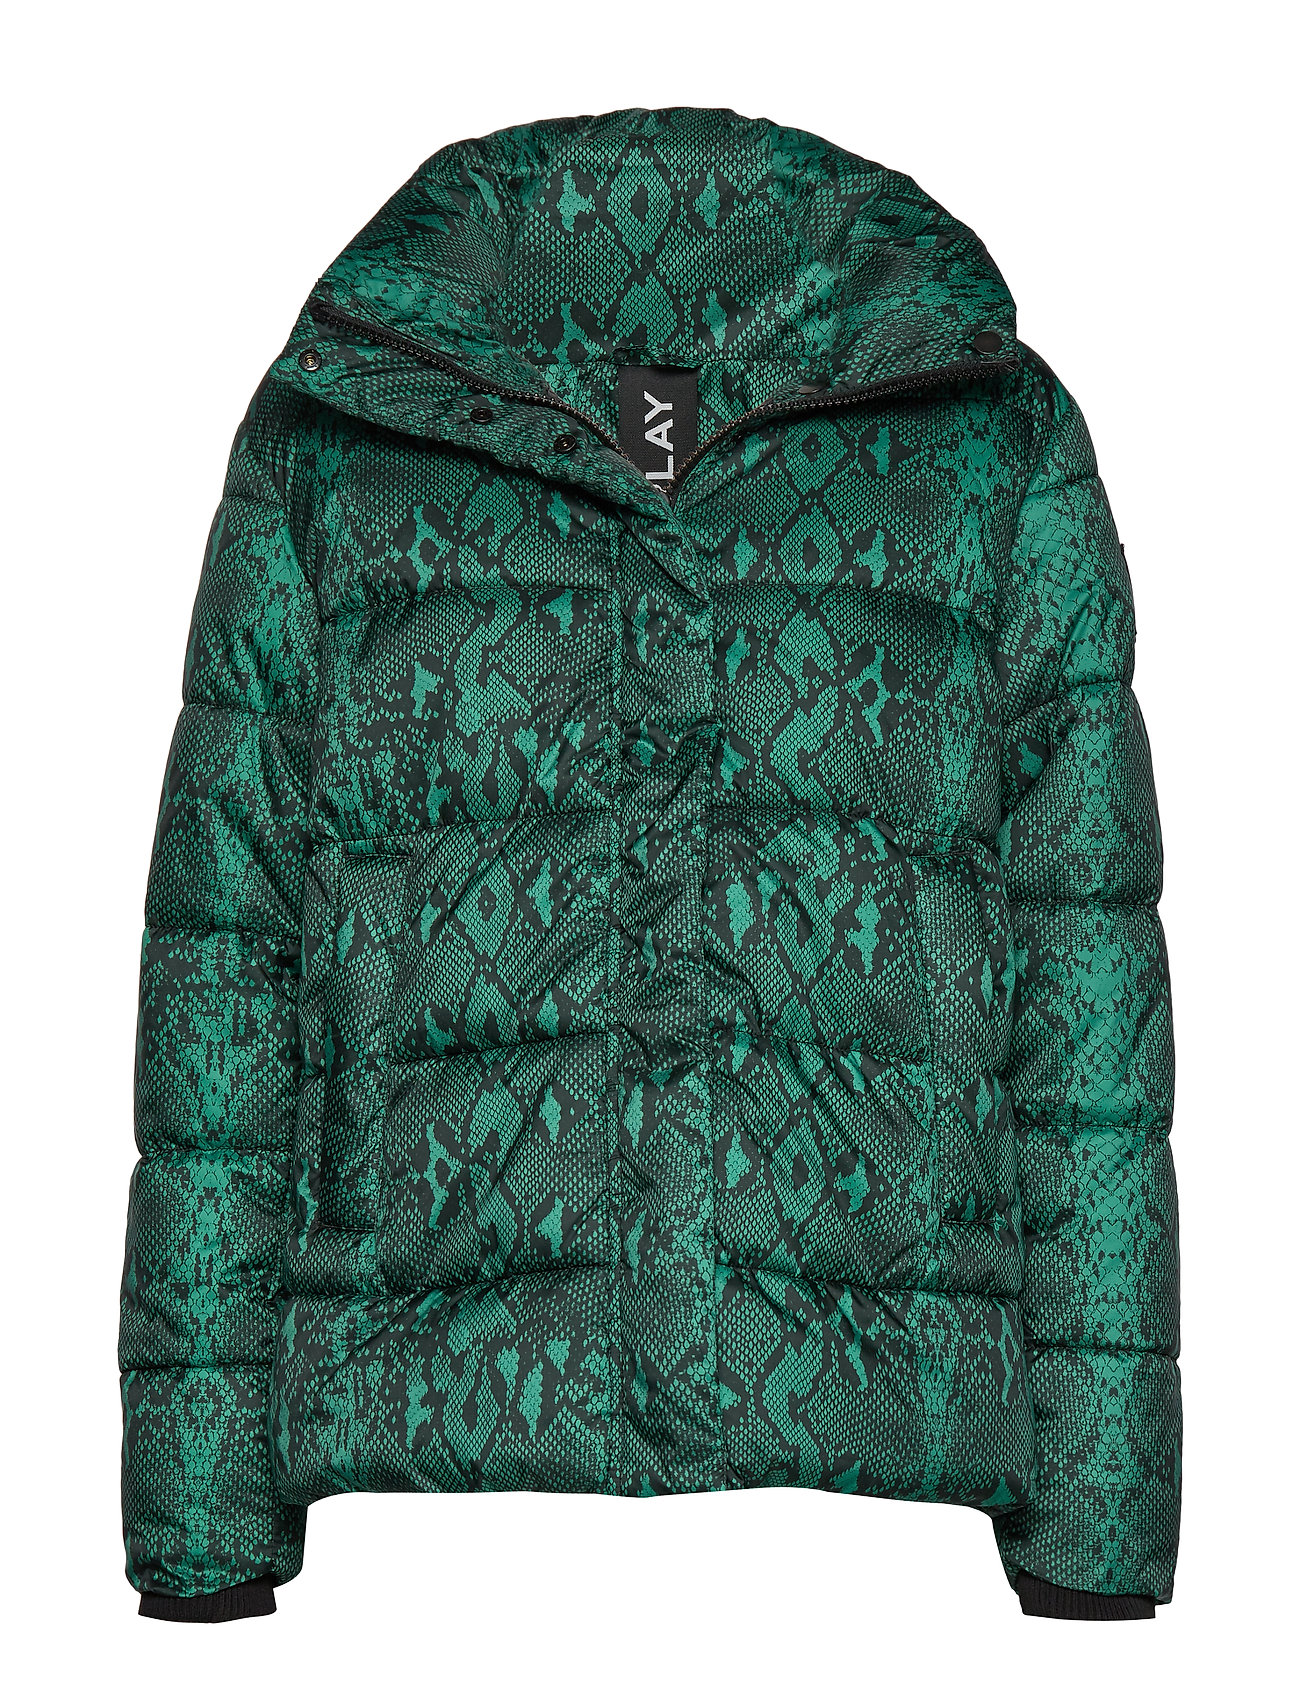 Replay Jacket - BLACK/GREEN SNAKE